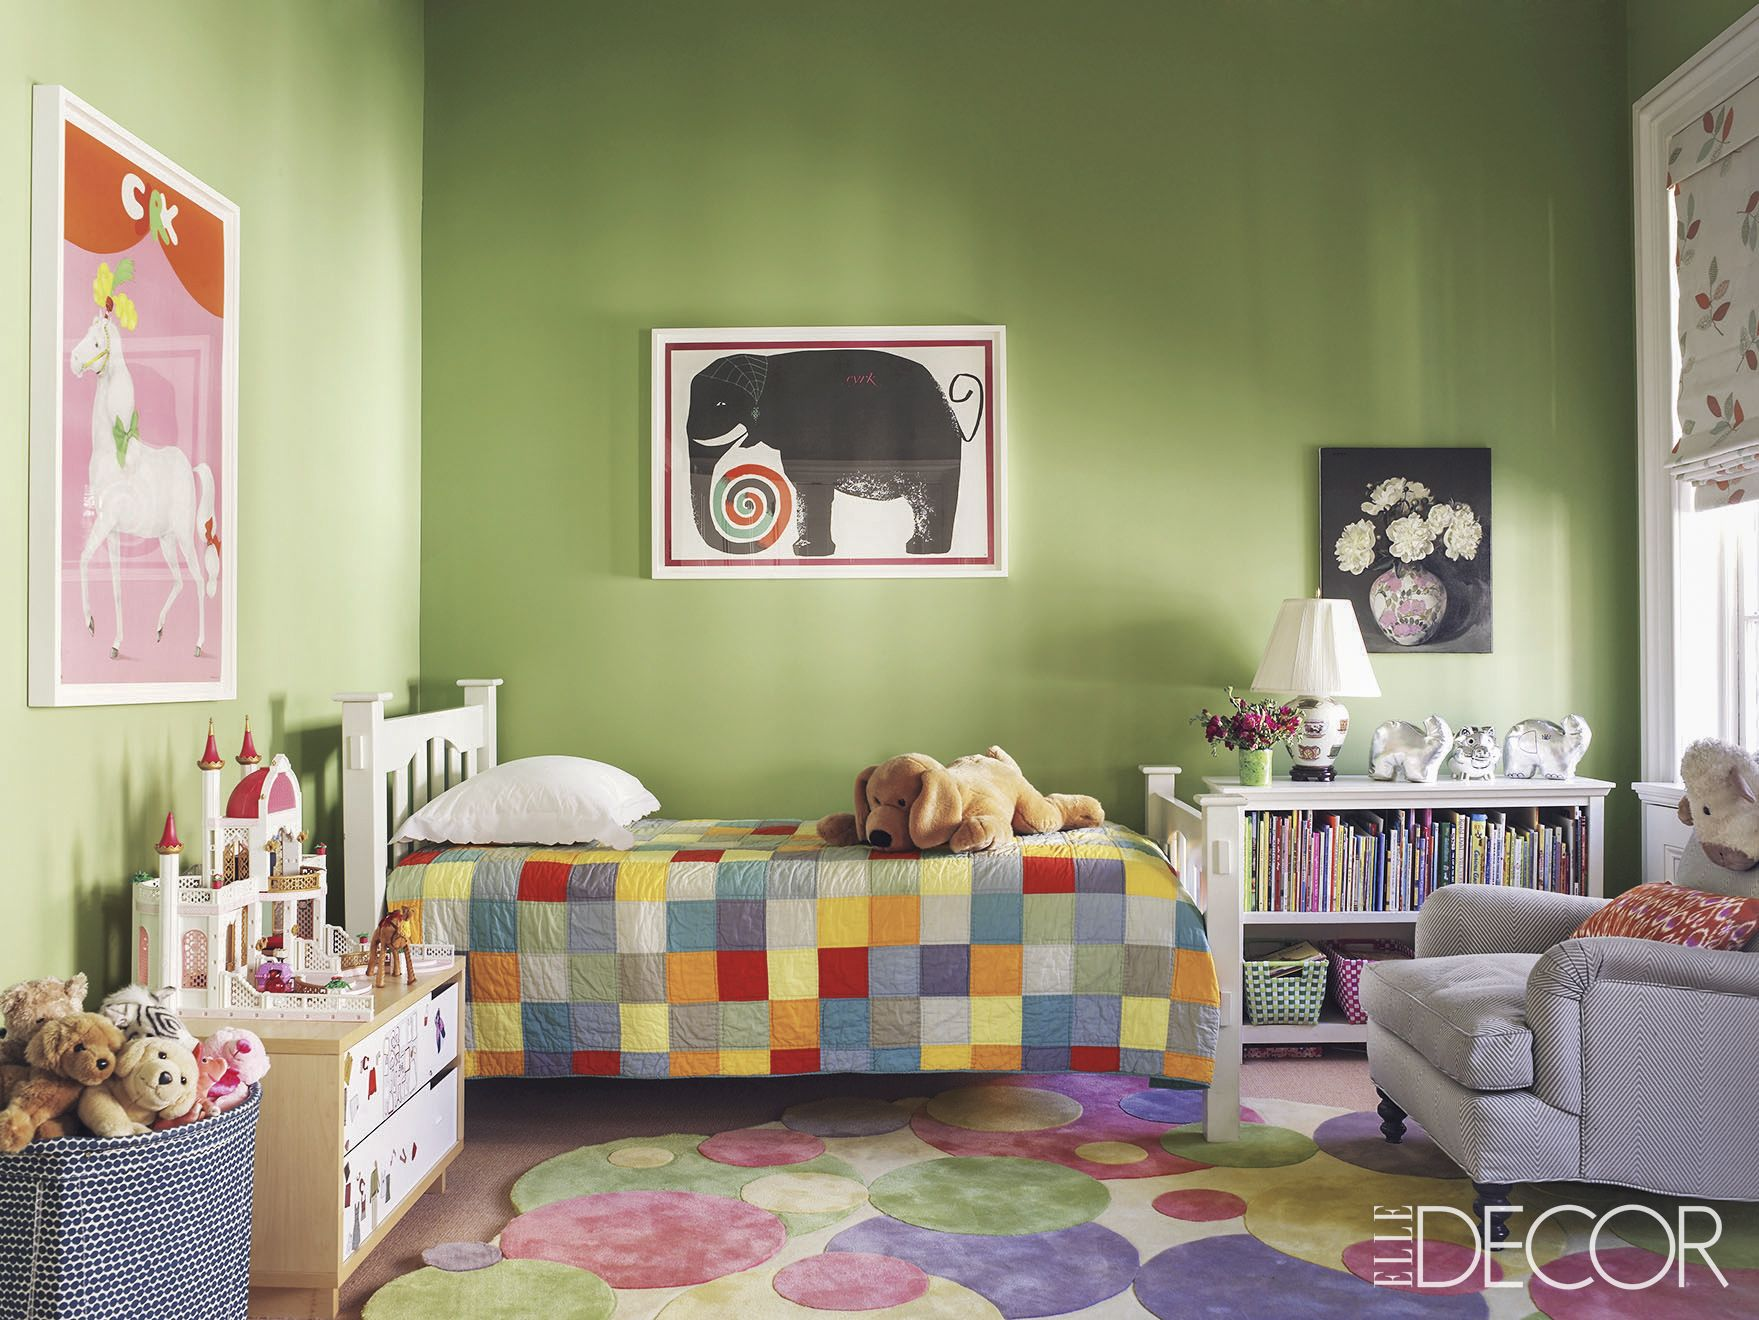 18 cool kids room decorating ideas kids room decor rh elledecor com decorating kids room games decorating kids room